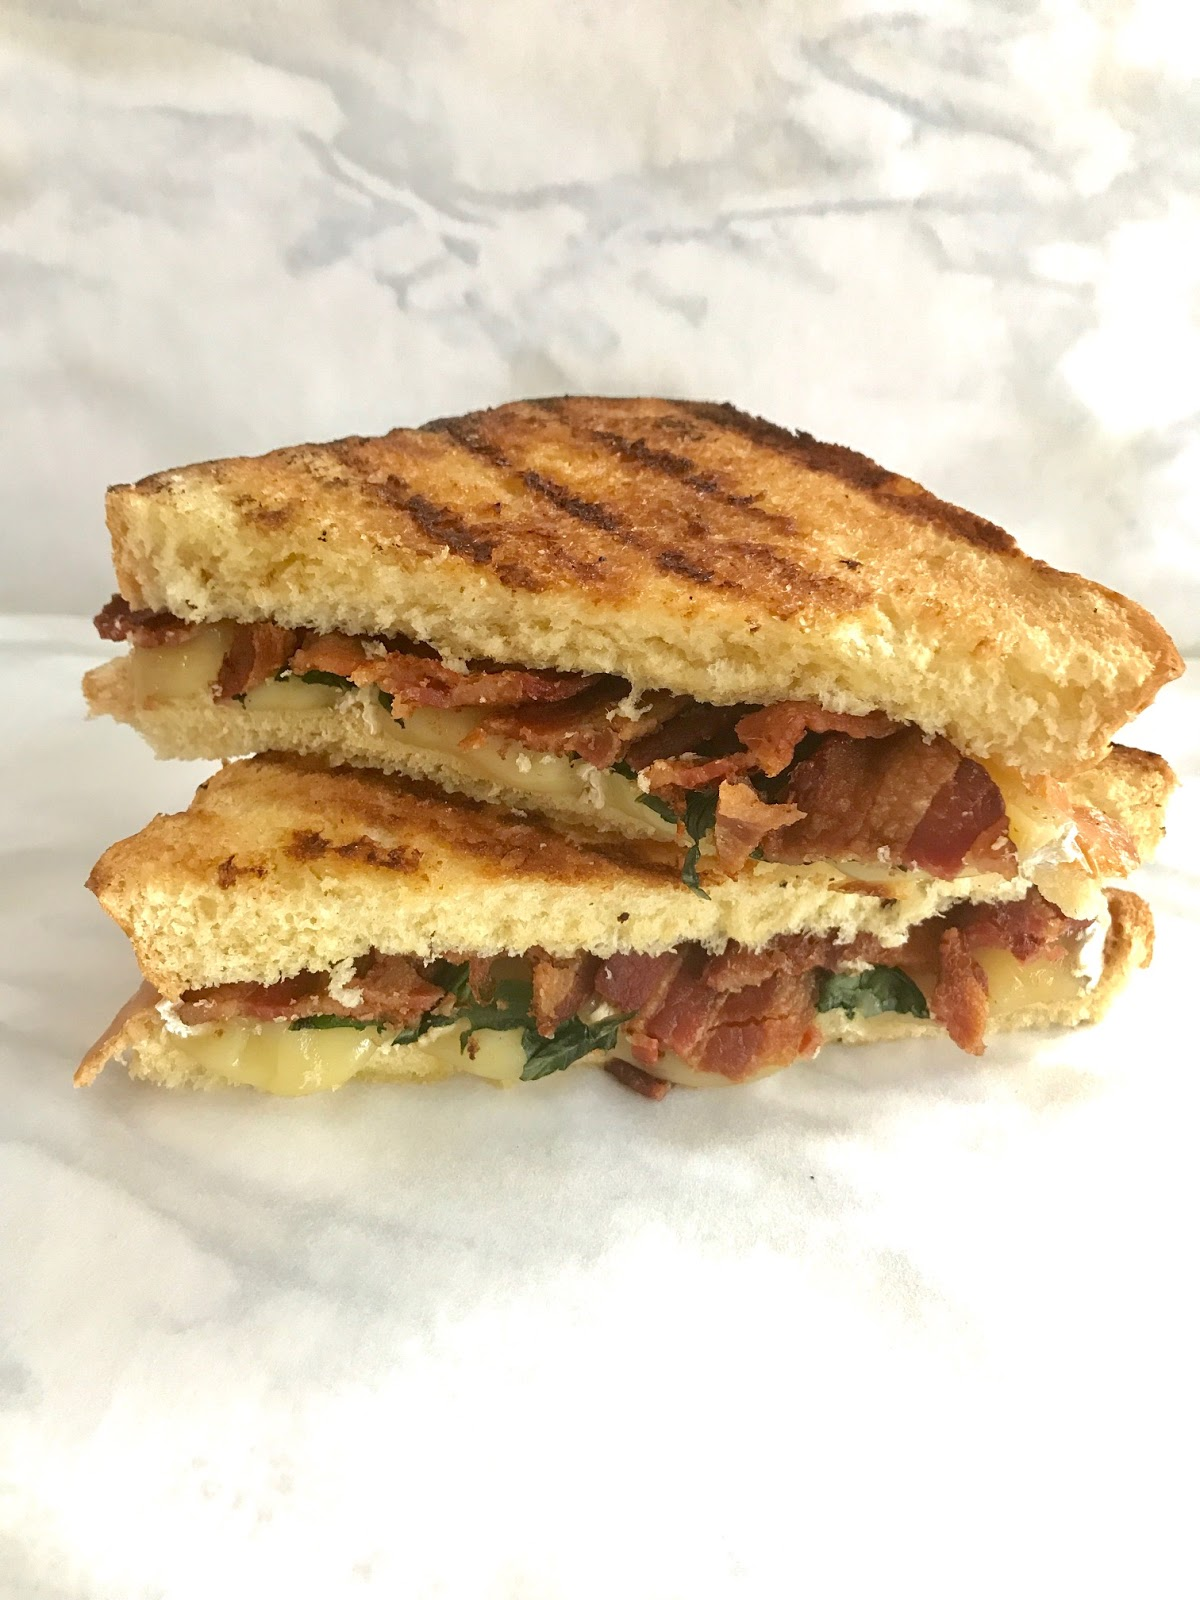 Our Good Life: Smoked Brie, Bacon and Basil Grilled Cheese ...